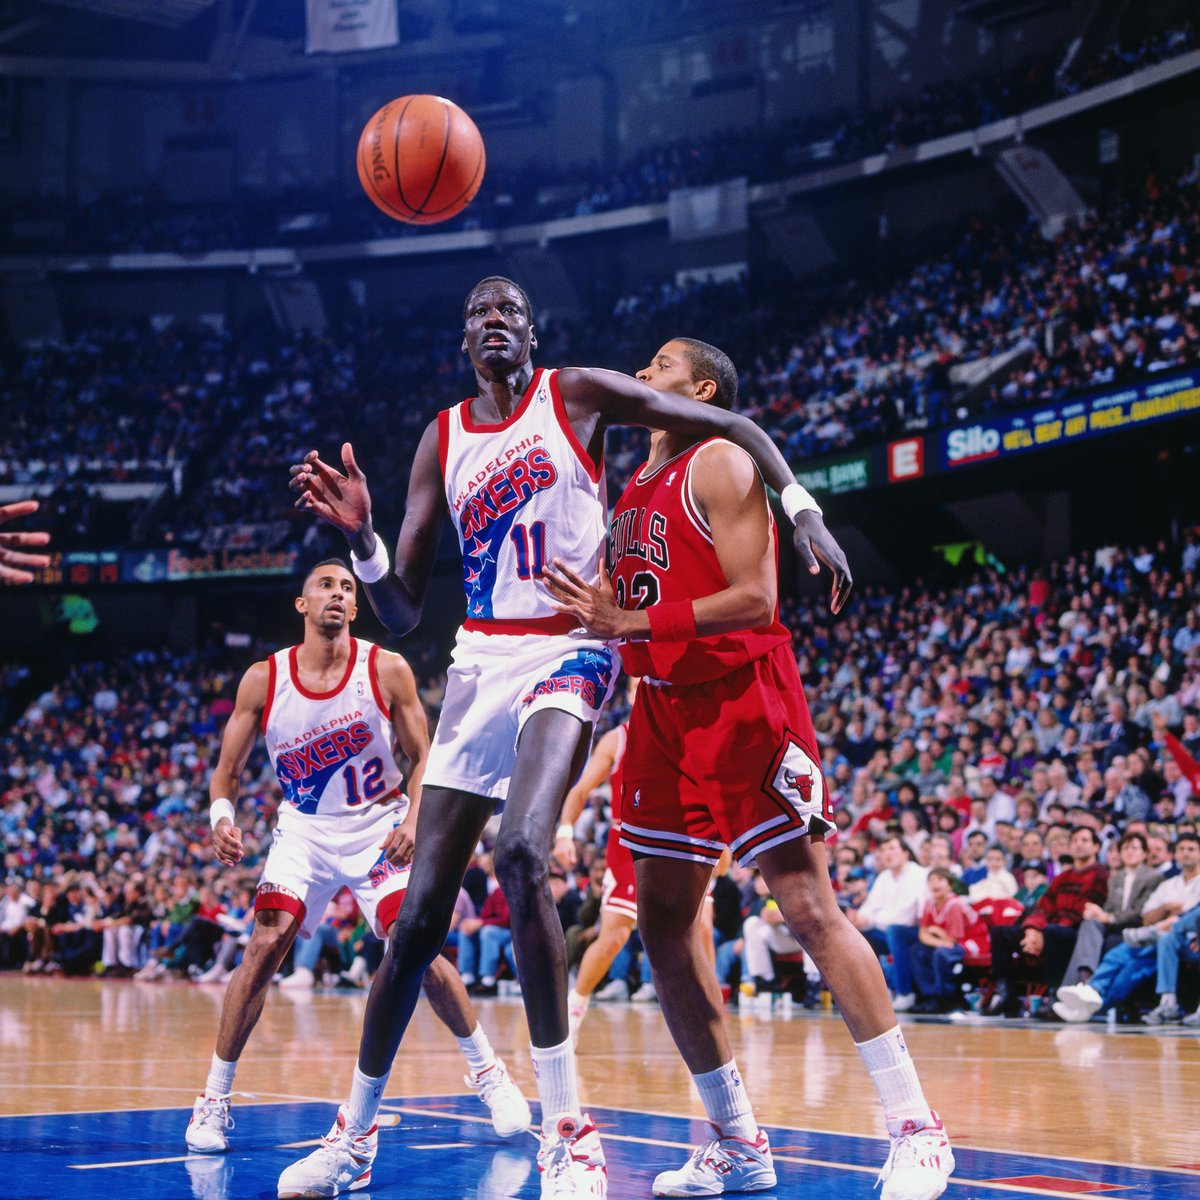 Manute Bol May Have Played in the NBA at 50 Years Old